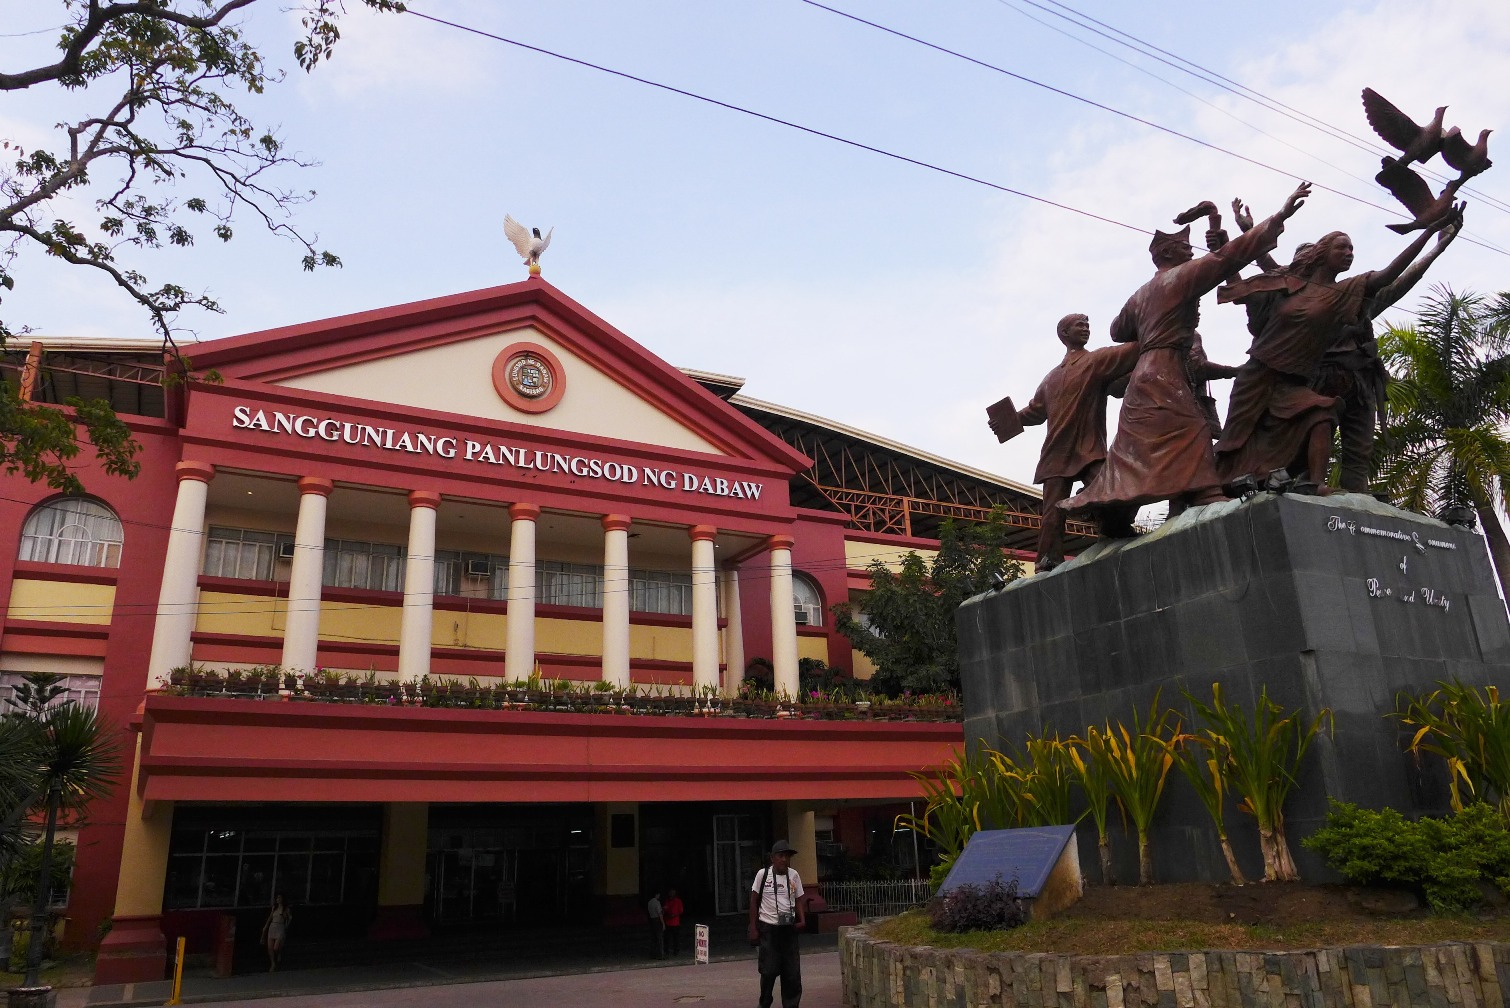 D.I.Y. Davao City Tour; Davao itinerary; What to see in Davao city; What to do in Davao city; Davao activities